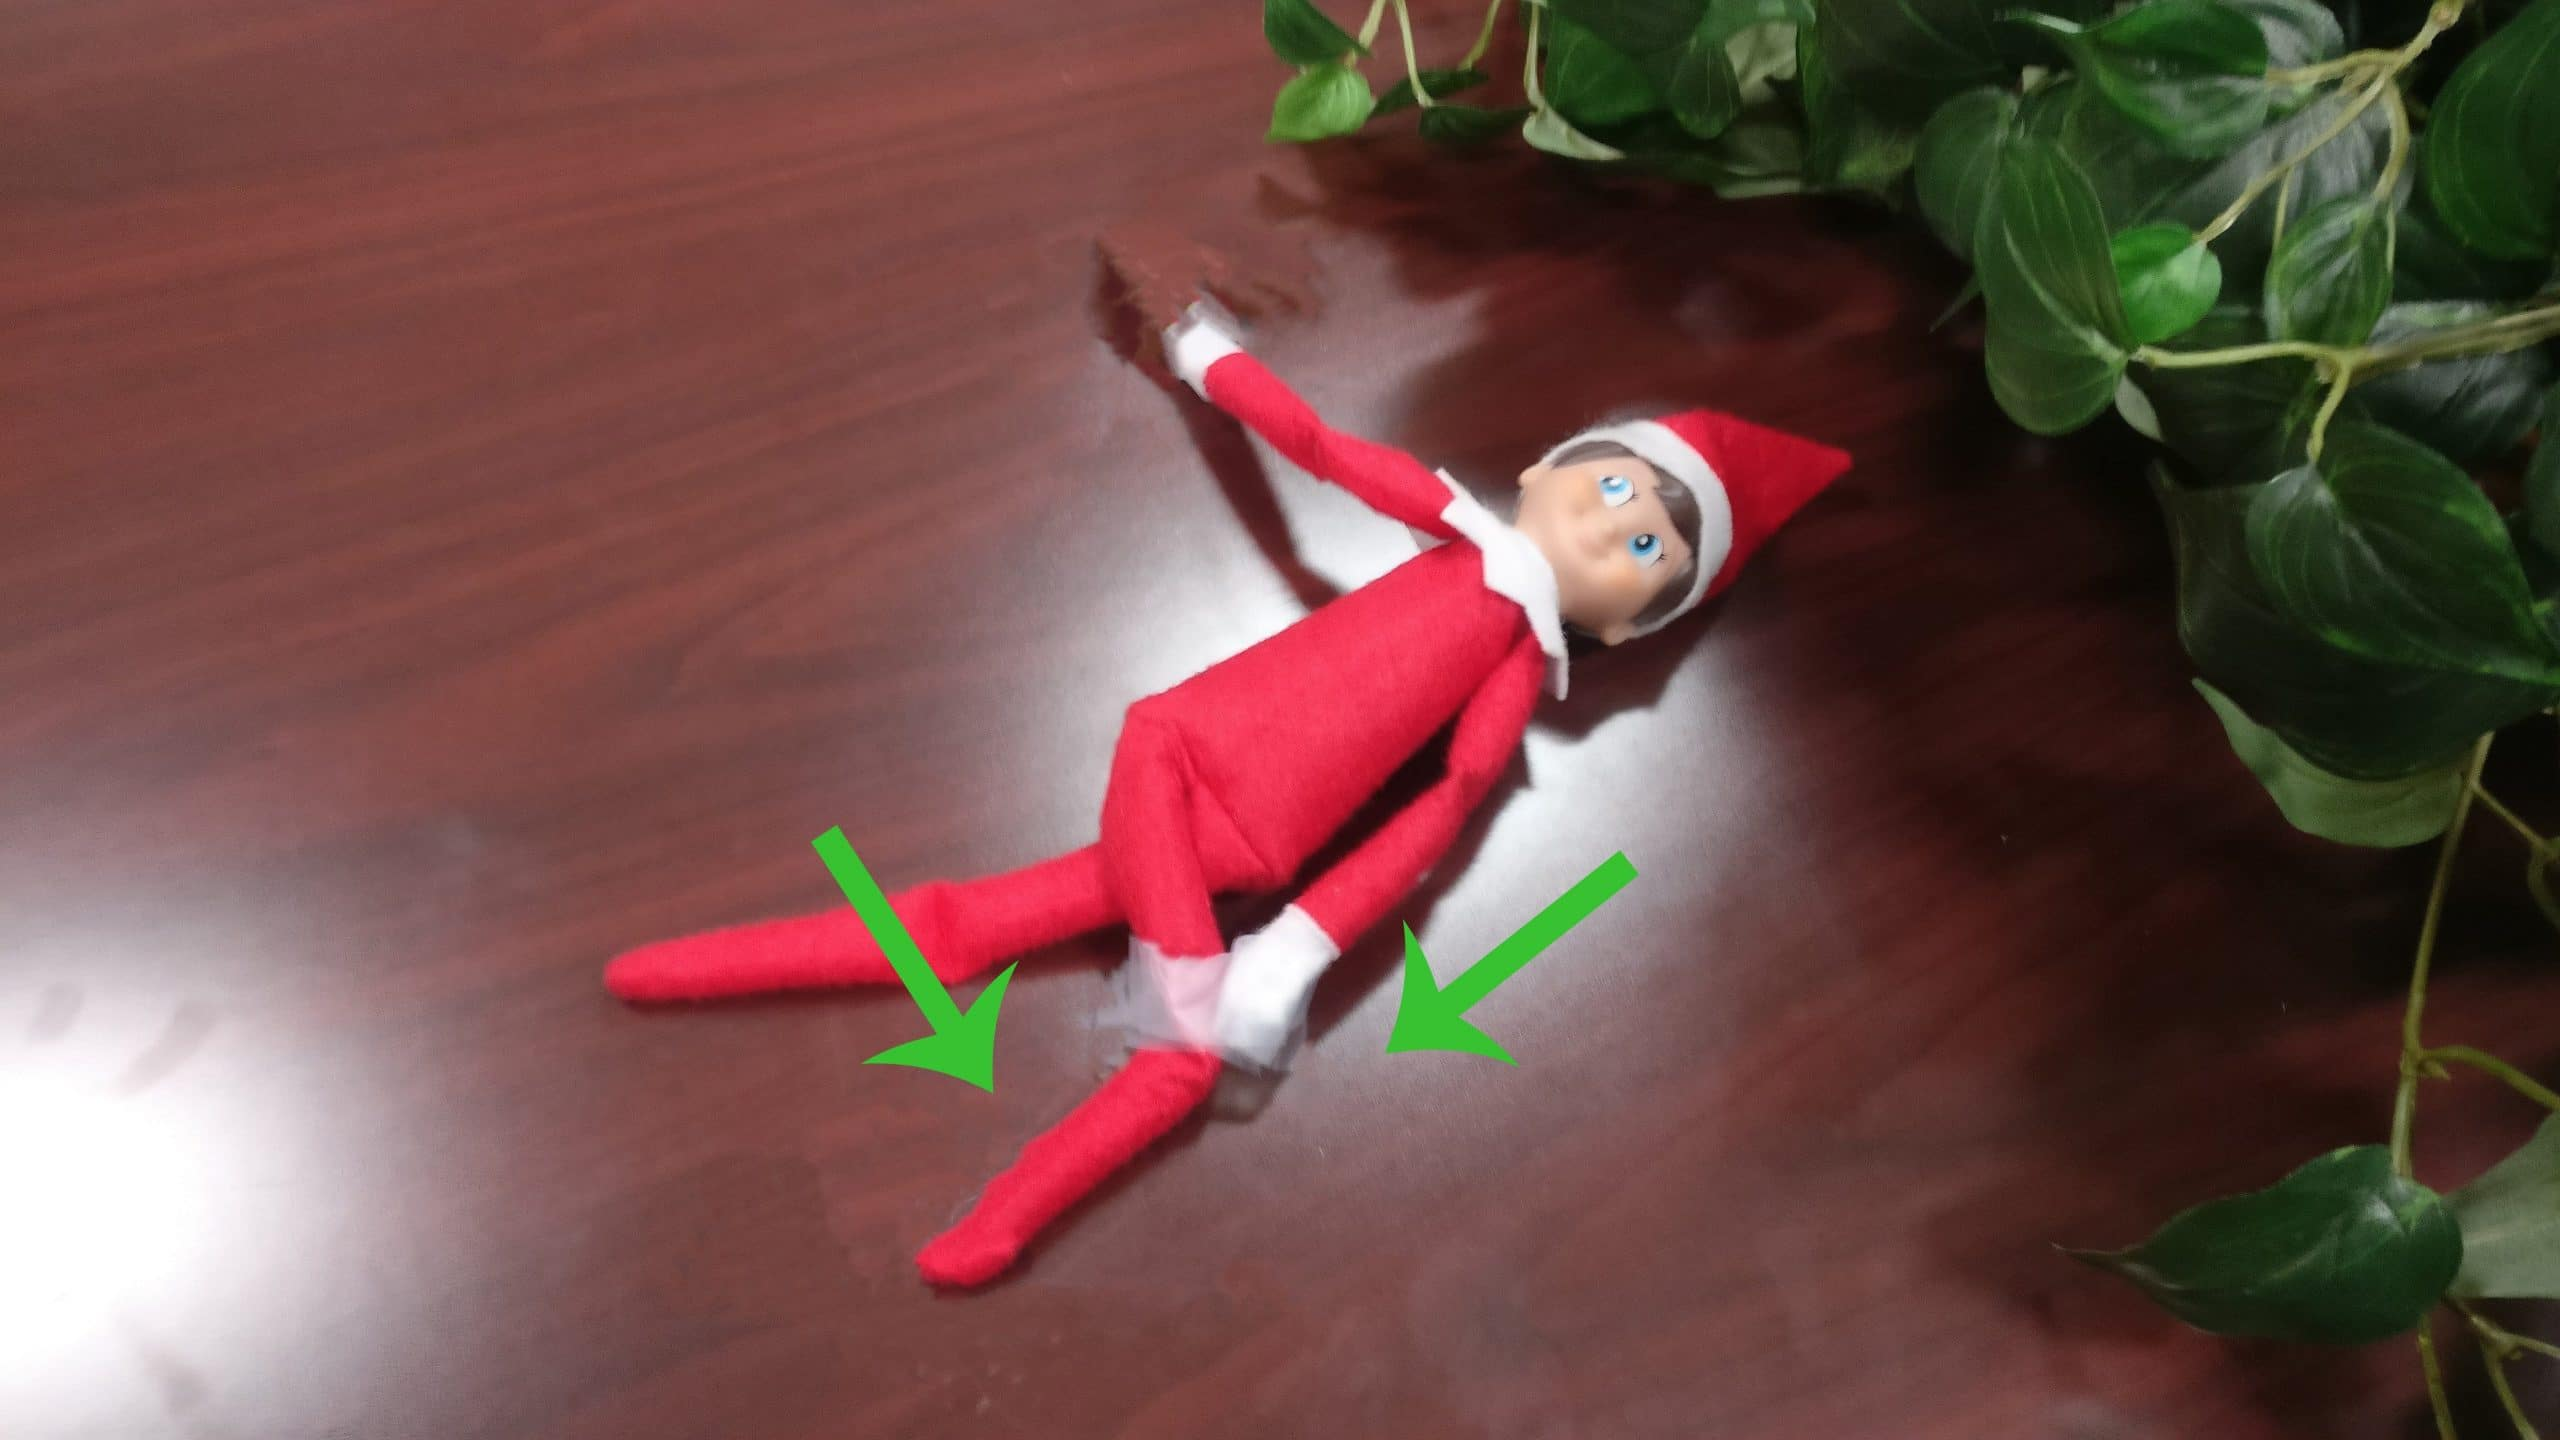 Elf on the shelf doing a trunk rotation stretch.